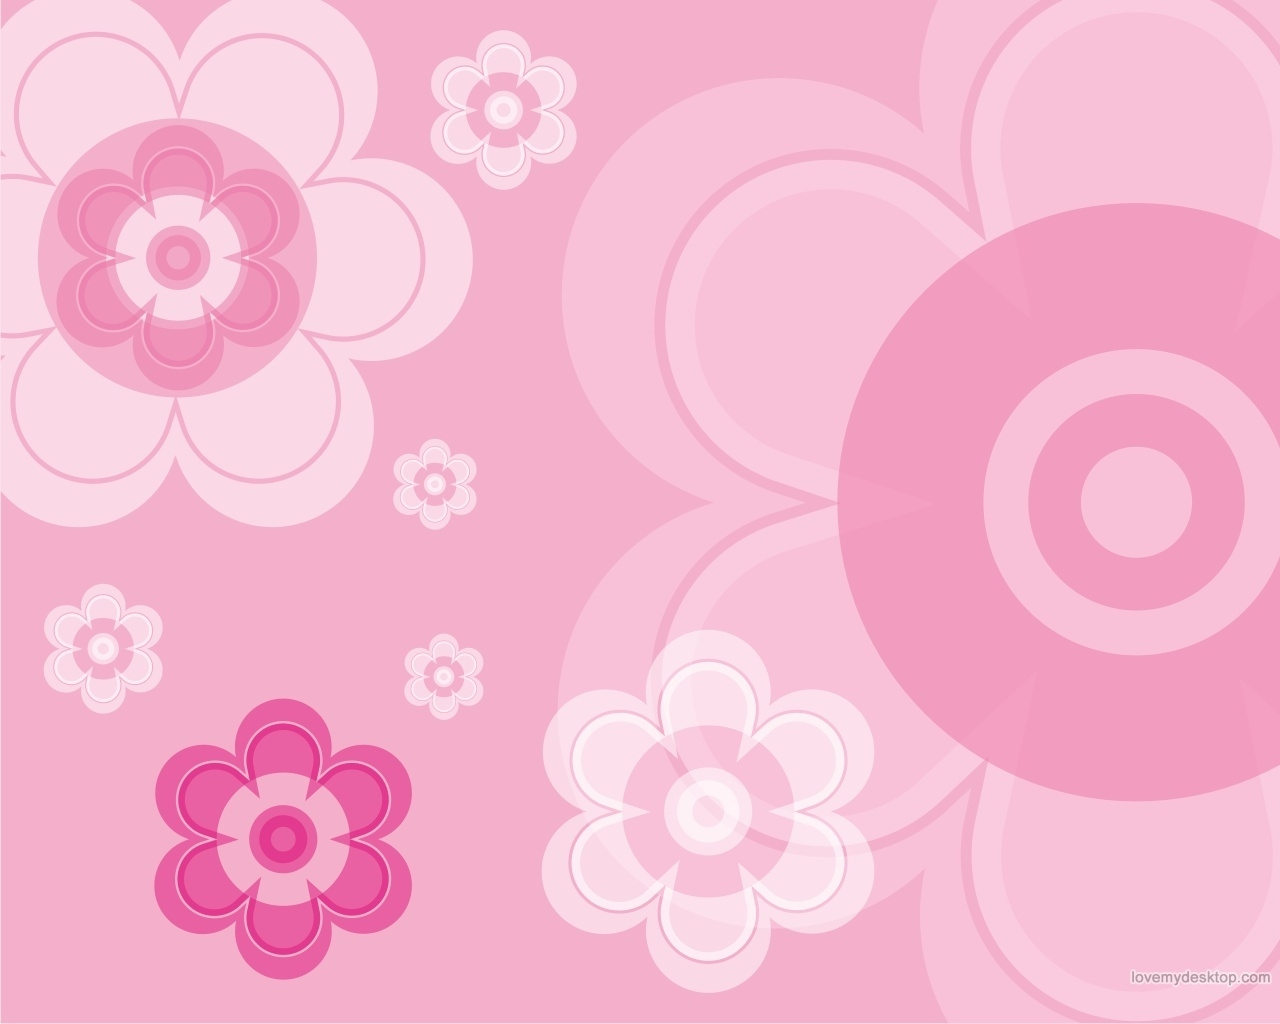 Pink Wallpaper - Colors Wallpaper (34511775) - Fanpop: www.fanpop.com/clubs/colors/images/34511775/title/pink-wallpaper...